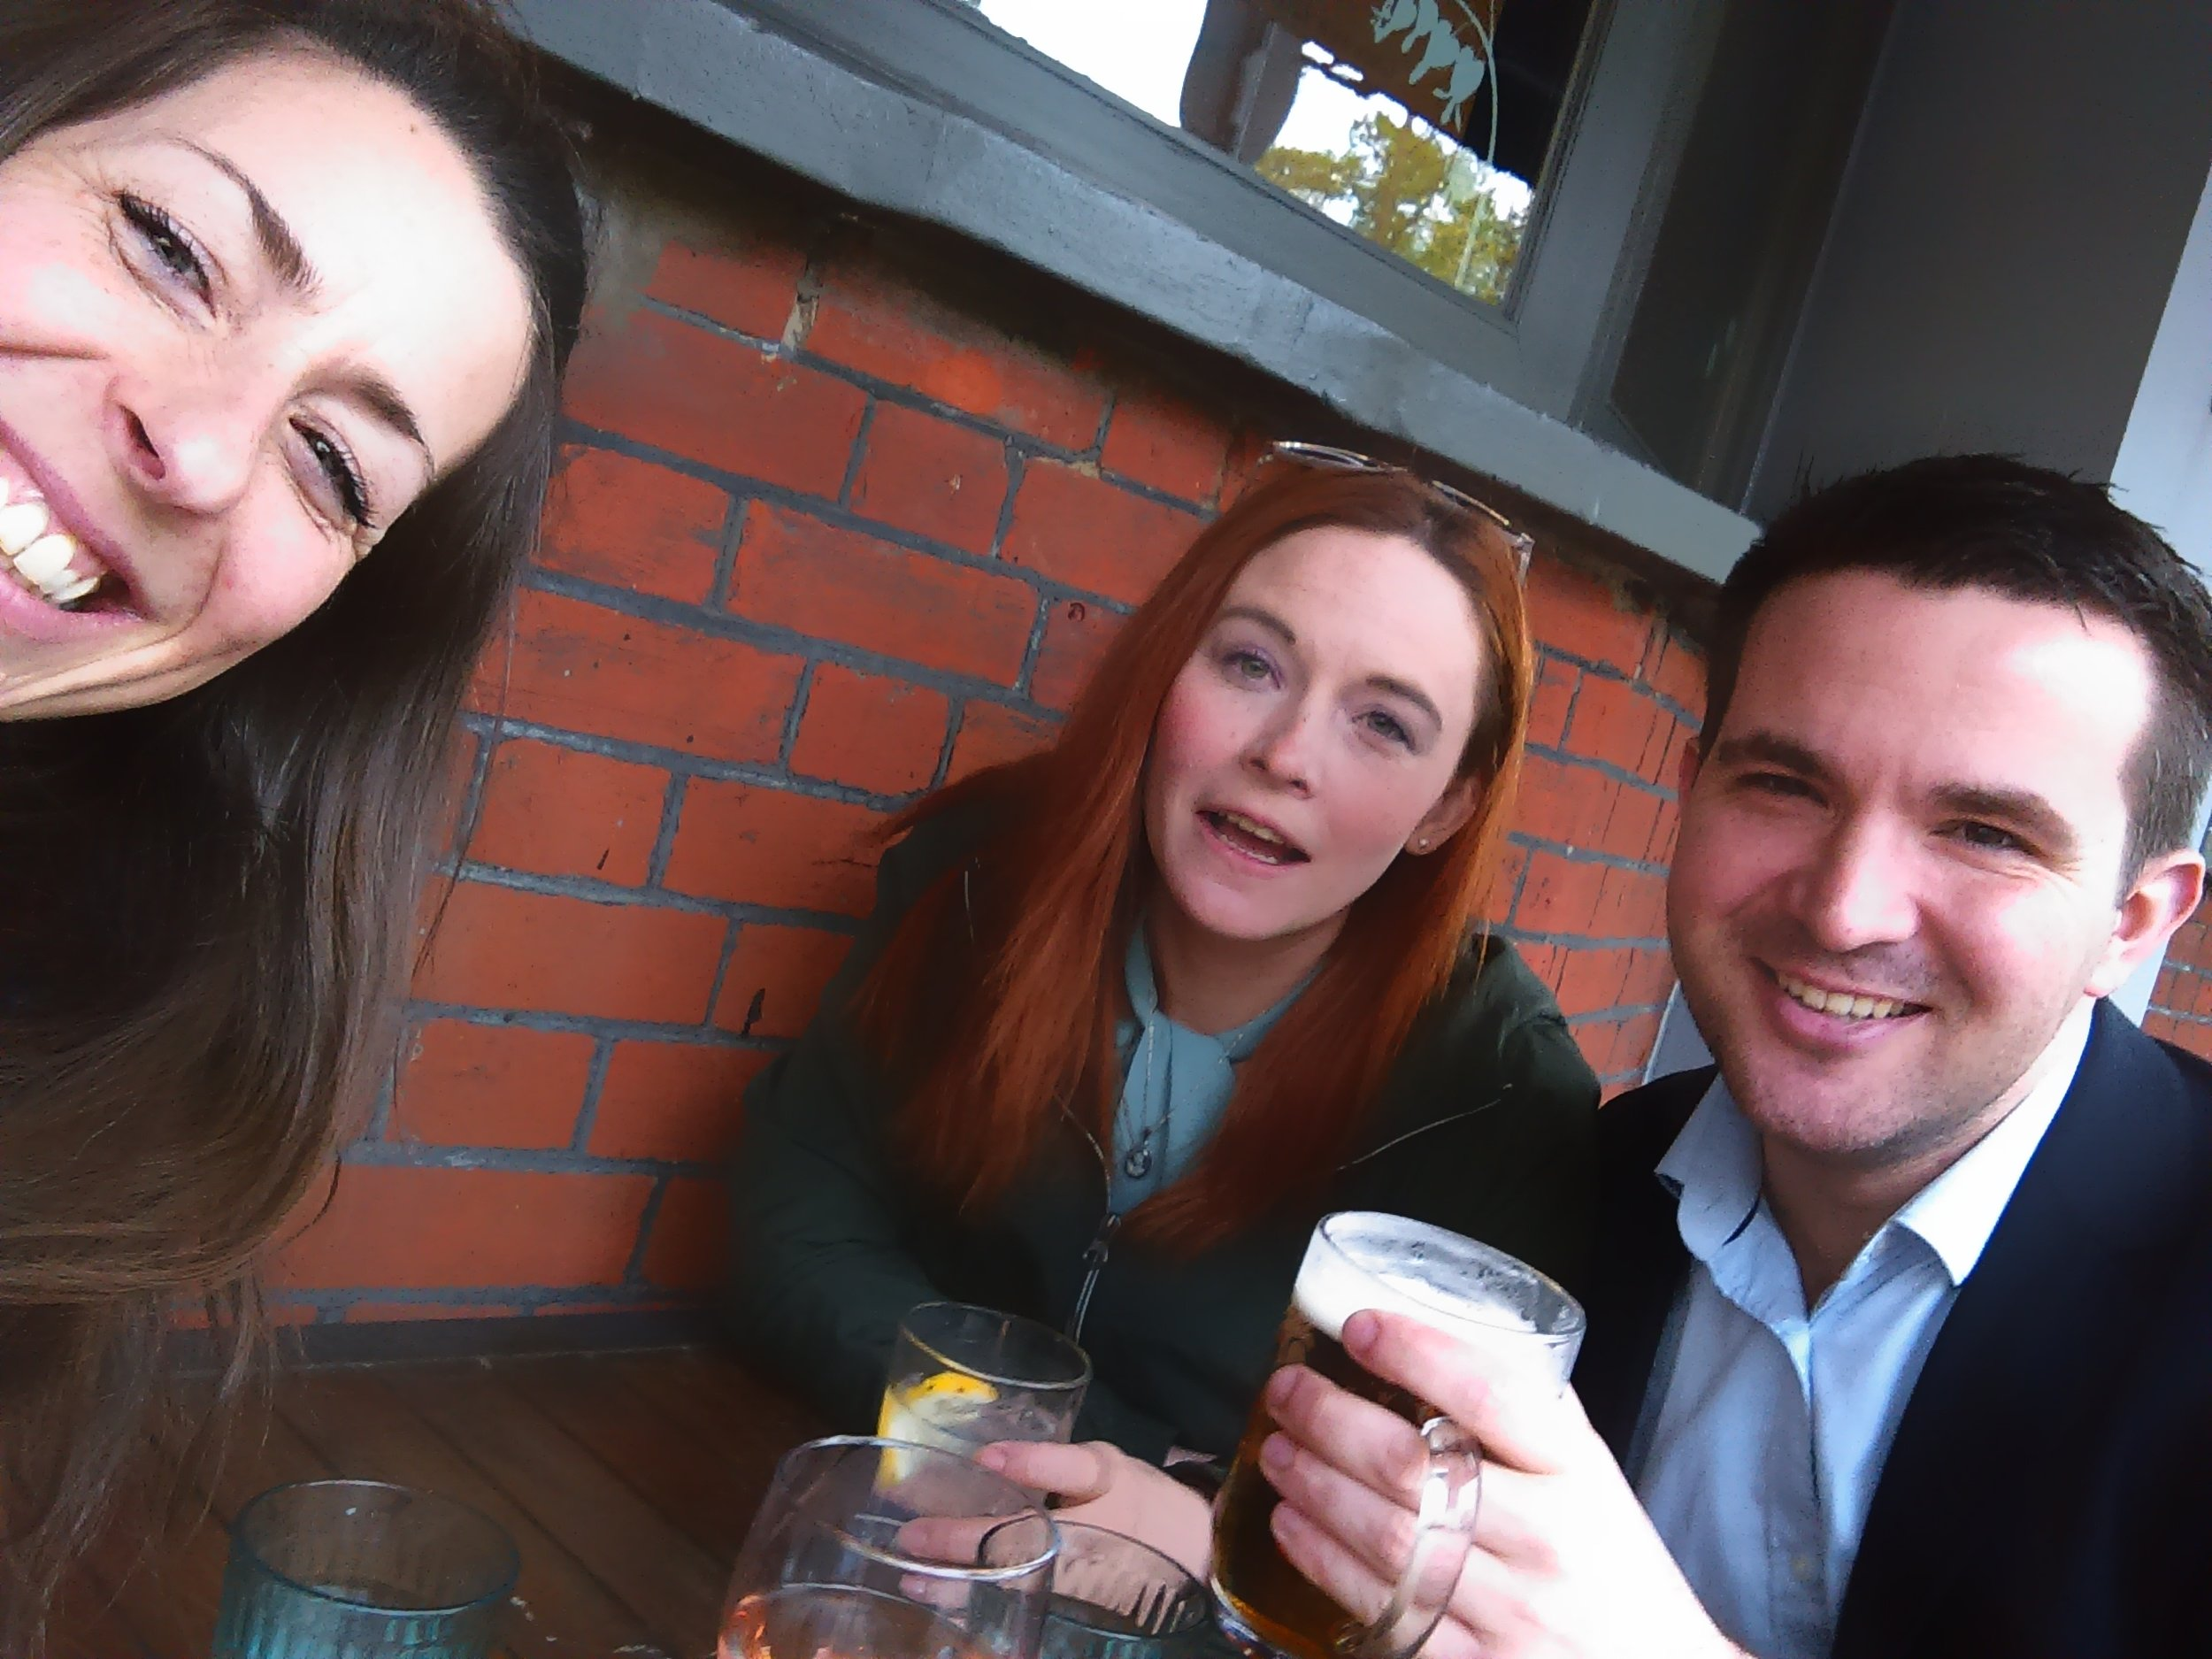 Post engagement session celebratory drinks……..